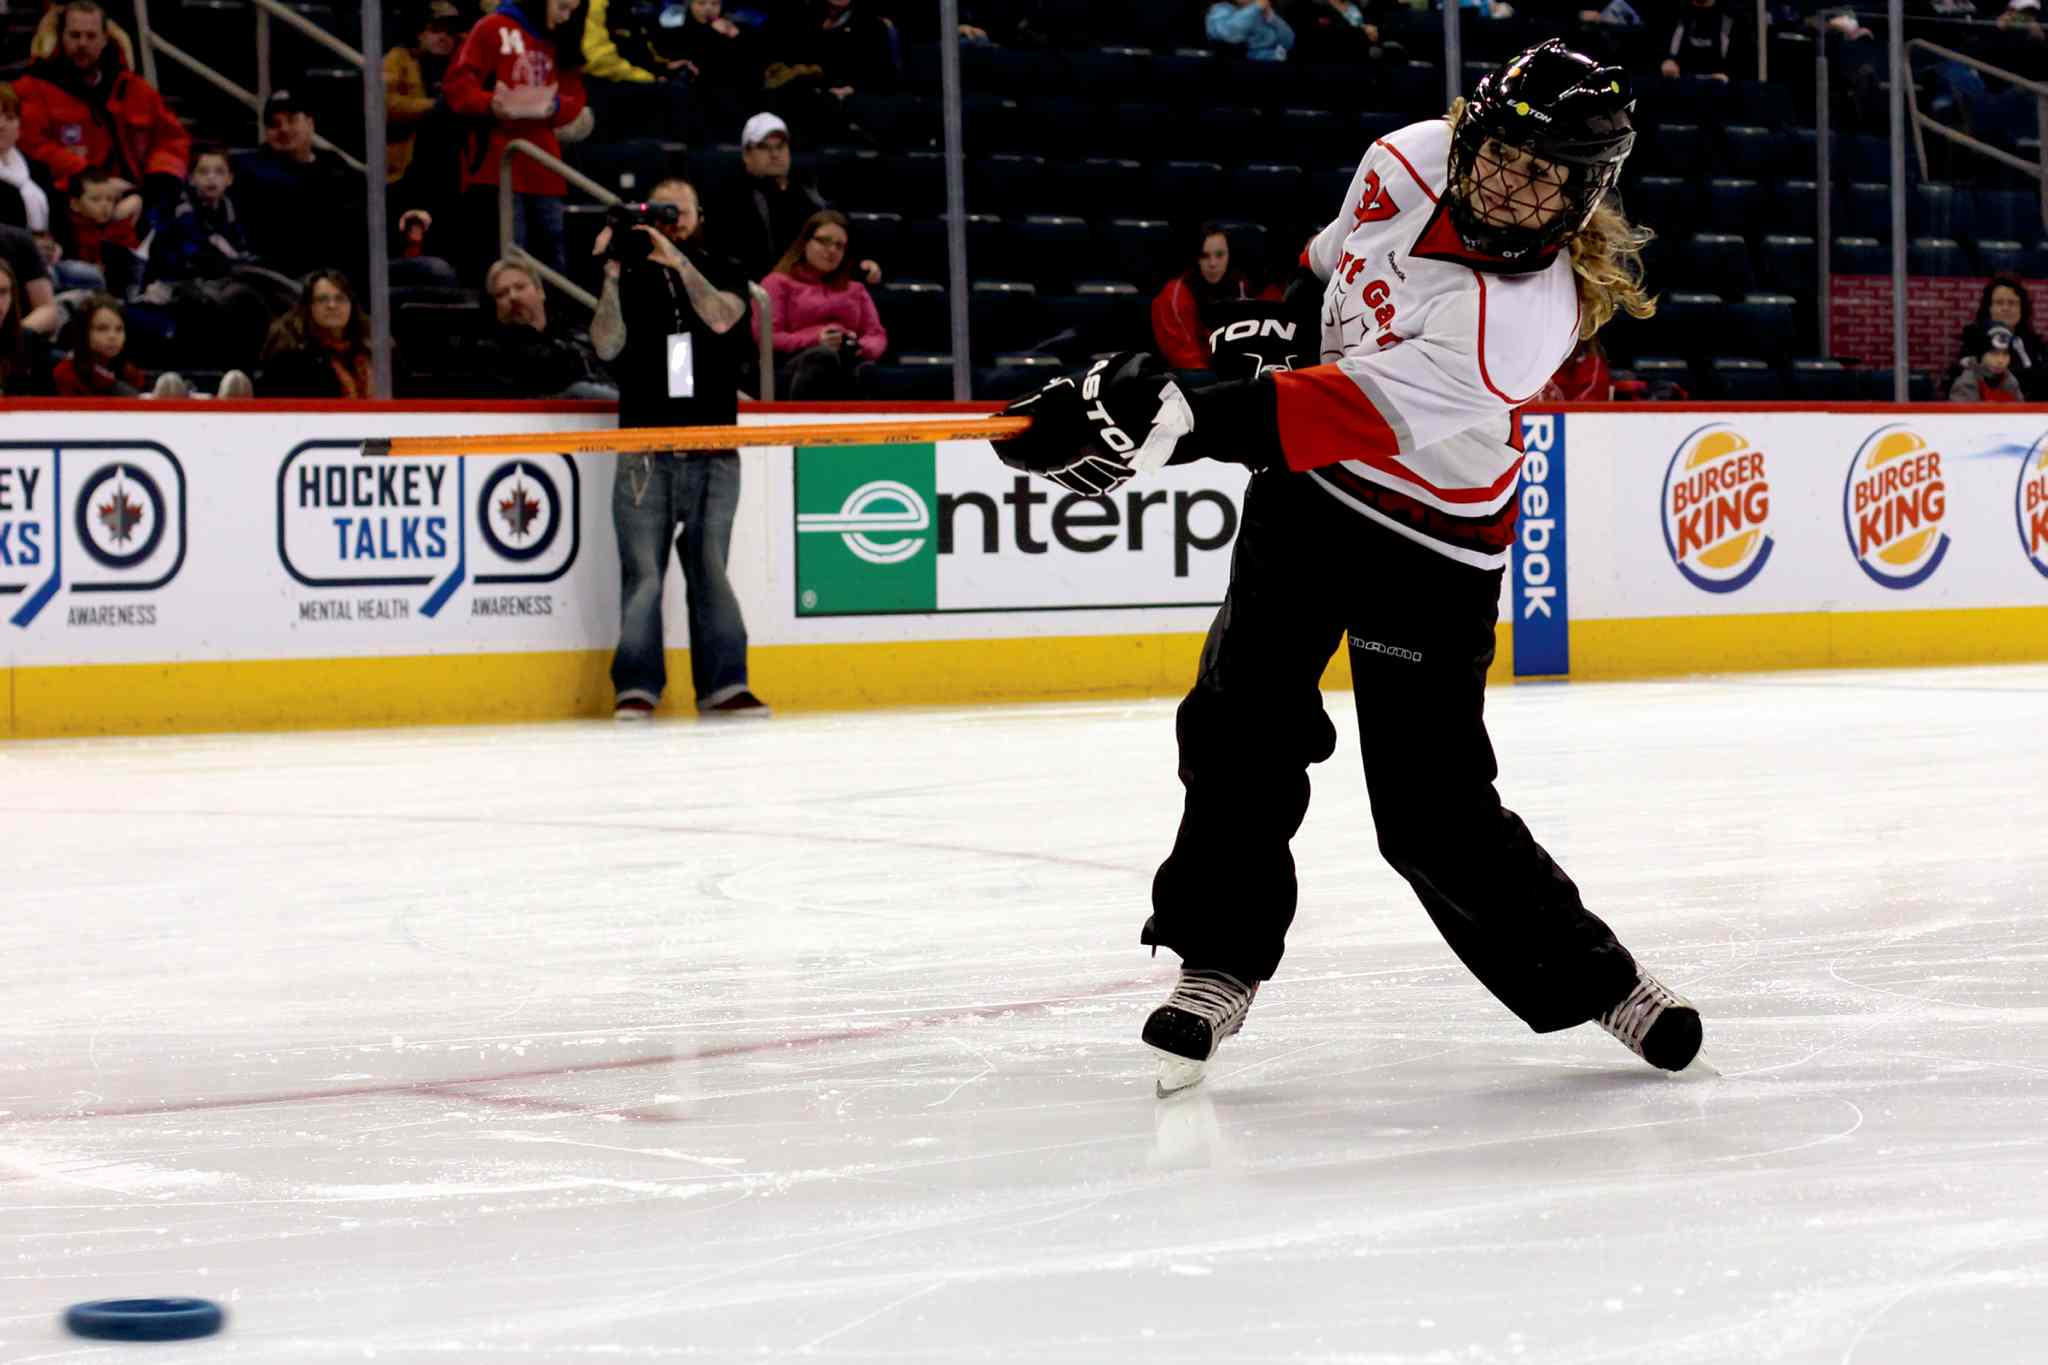 Shea Hlady of the Fort Garry Fierce takes part in the Hardest Shot Competition at the Winnipeg Ringette League's all-star game at the MTS Centre.